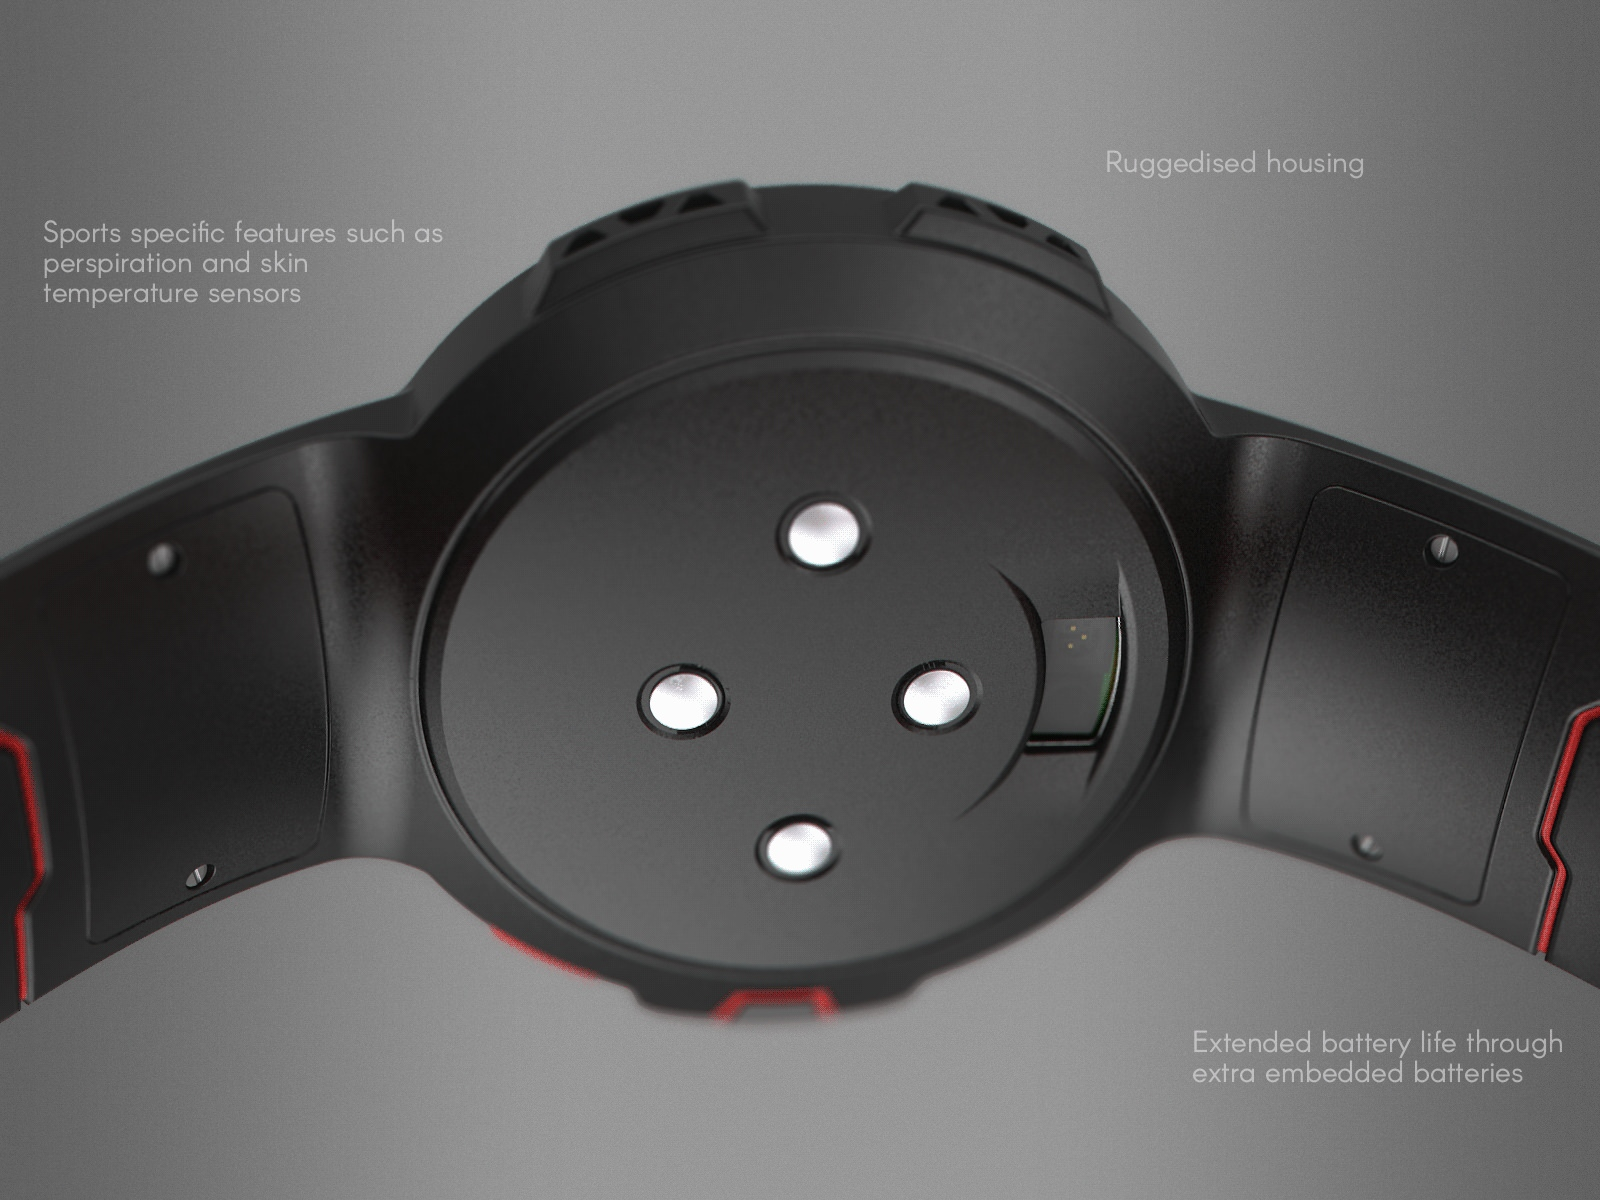 A close-up of the underside of the red and black sport watch design